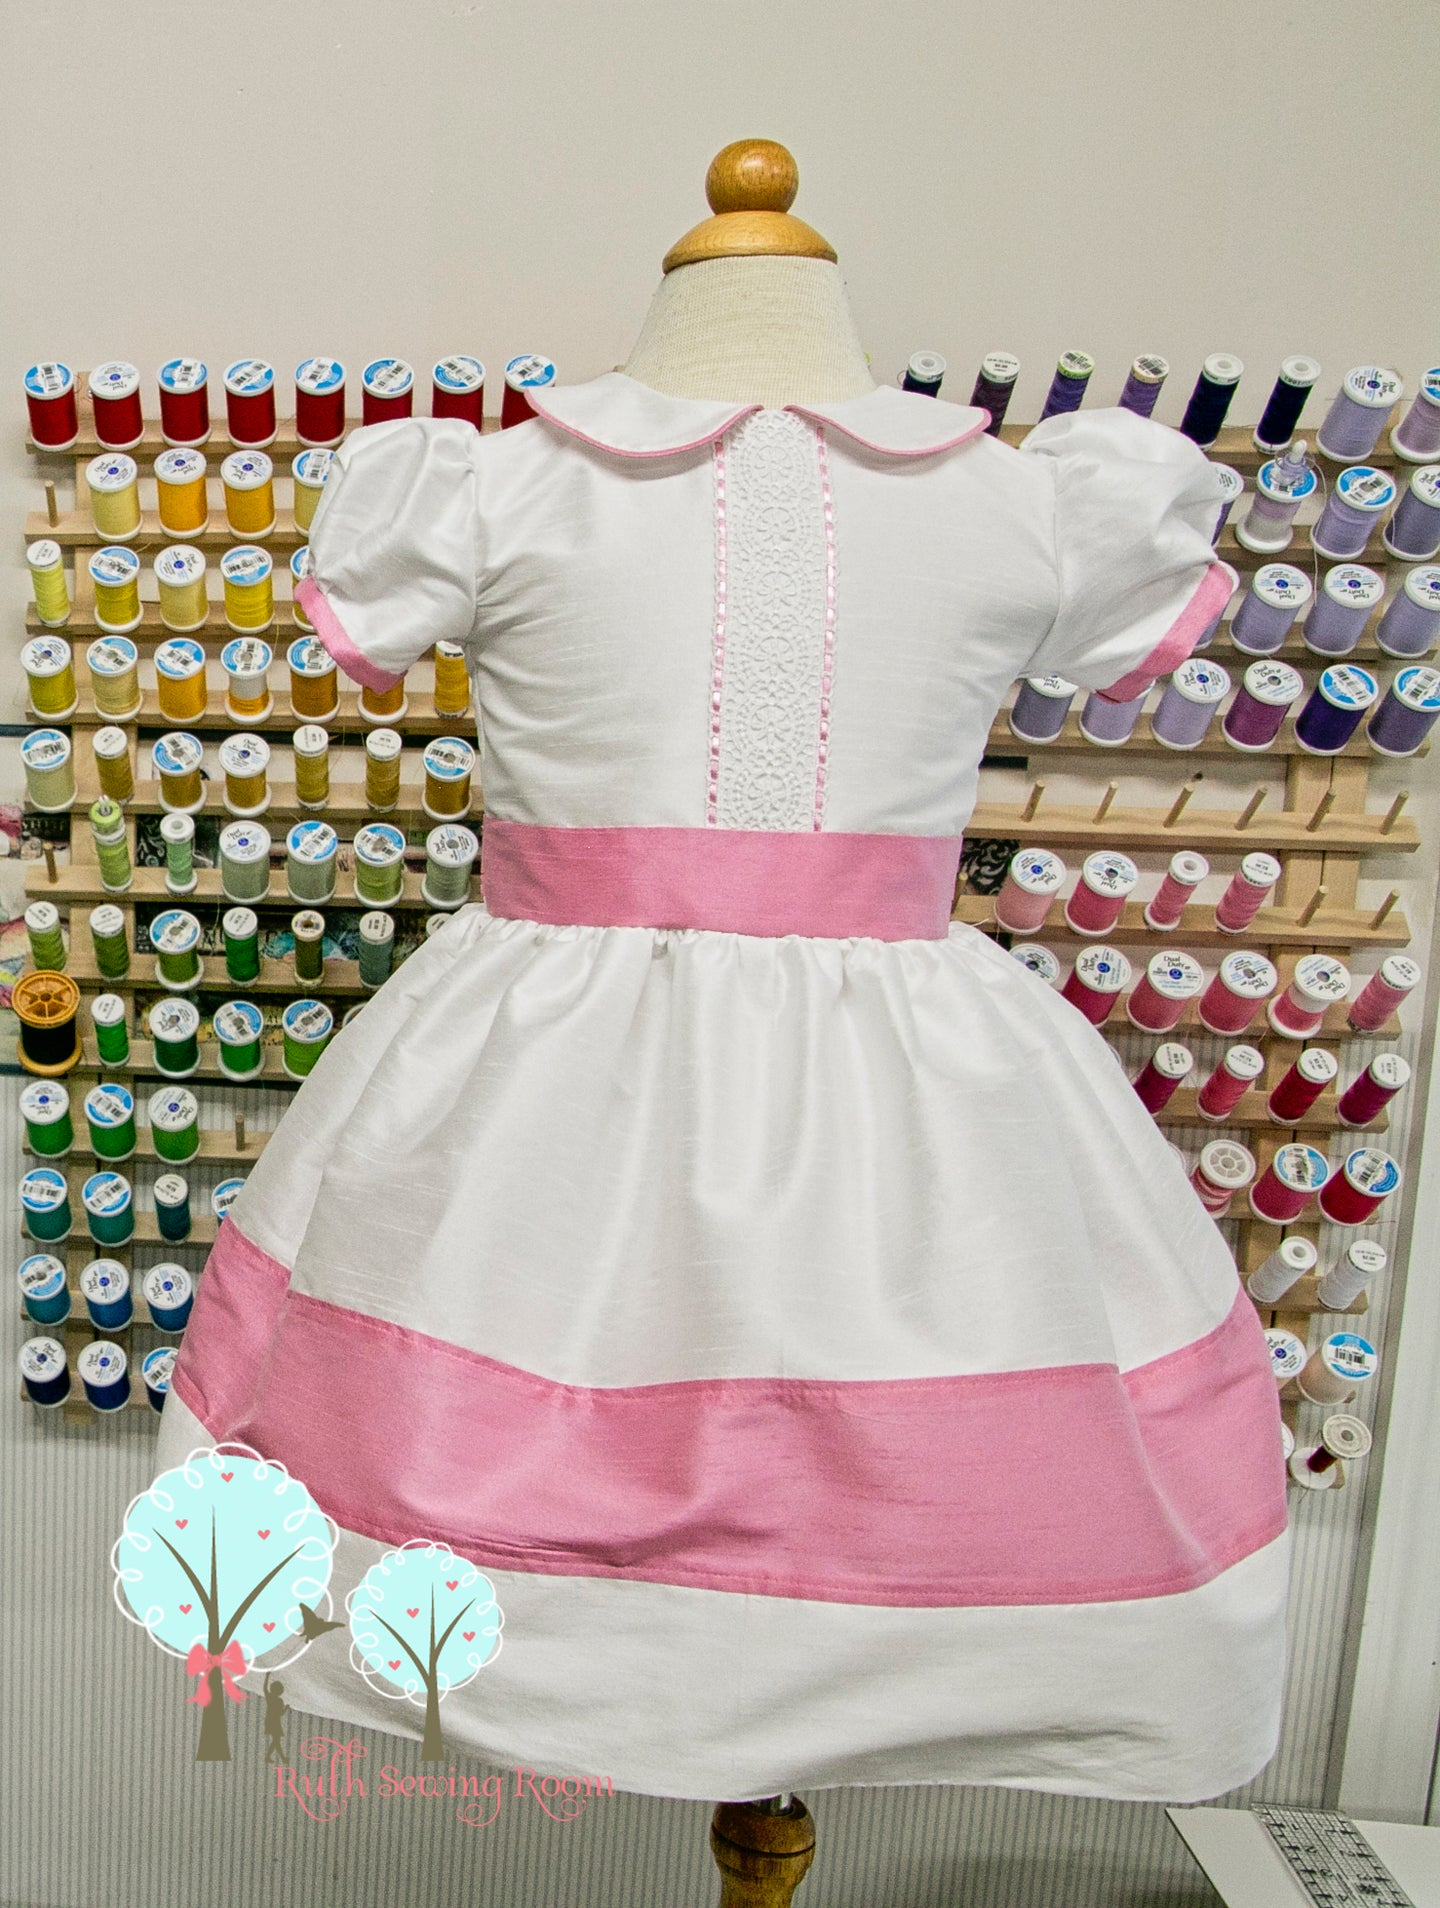 Beauty - Sunday Best - Poly Silk Dupioni - Wedding Flower Girl - Easter - Tea Party Dress - Birthday Party Dress - Princess